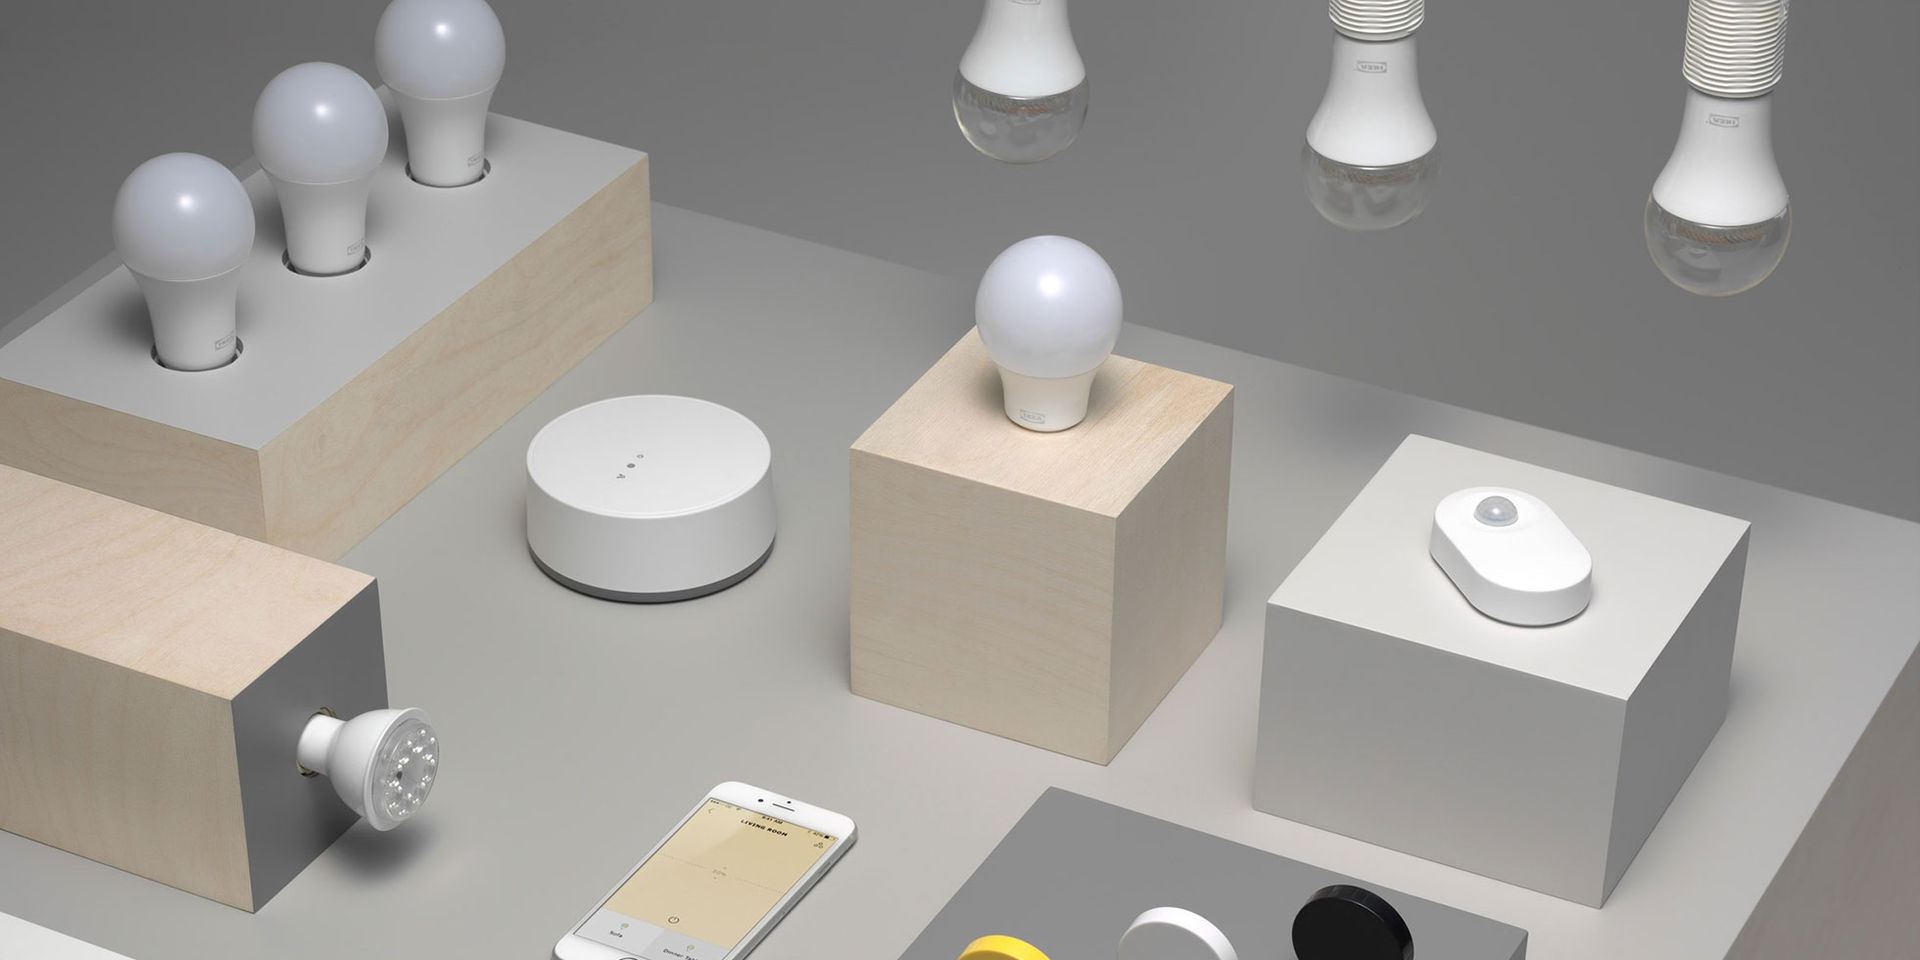 Ikea Tradfri Ikea Finally Adds Homekit Support To Its Tradfri Smart Lighting